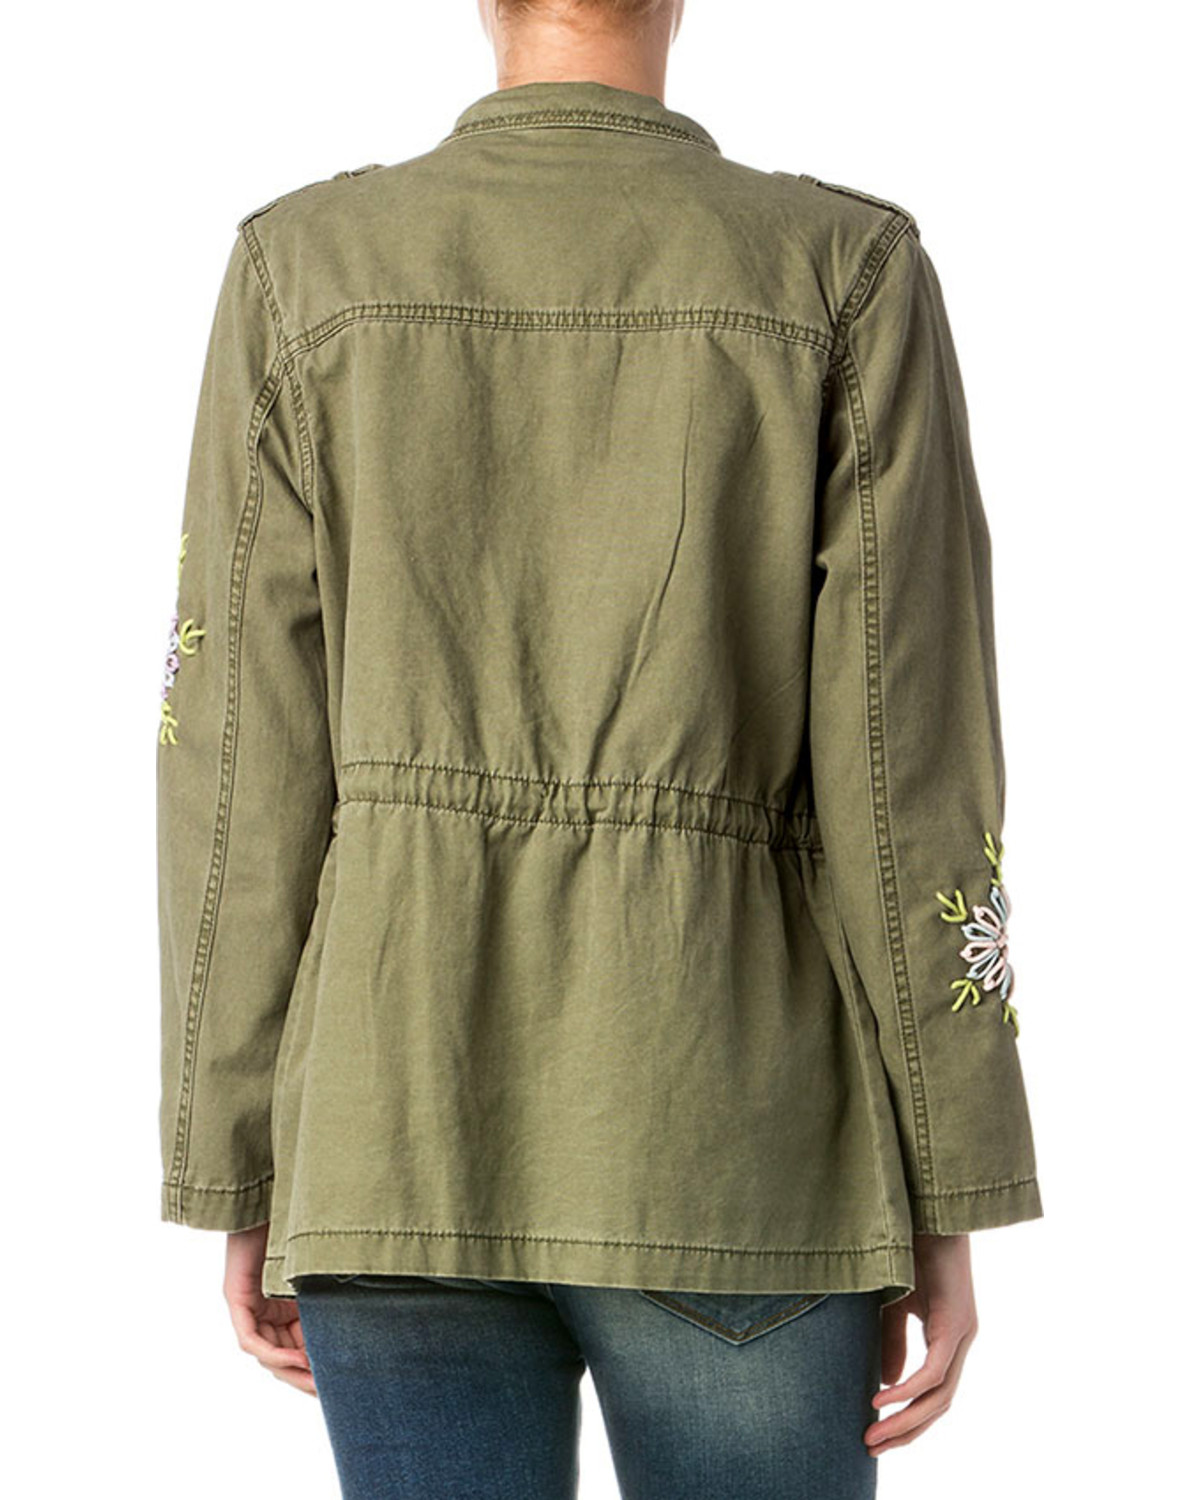 Miss me women s olive military embroidered jacket